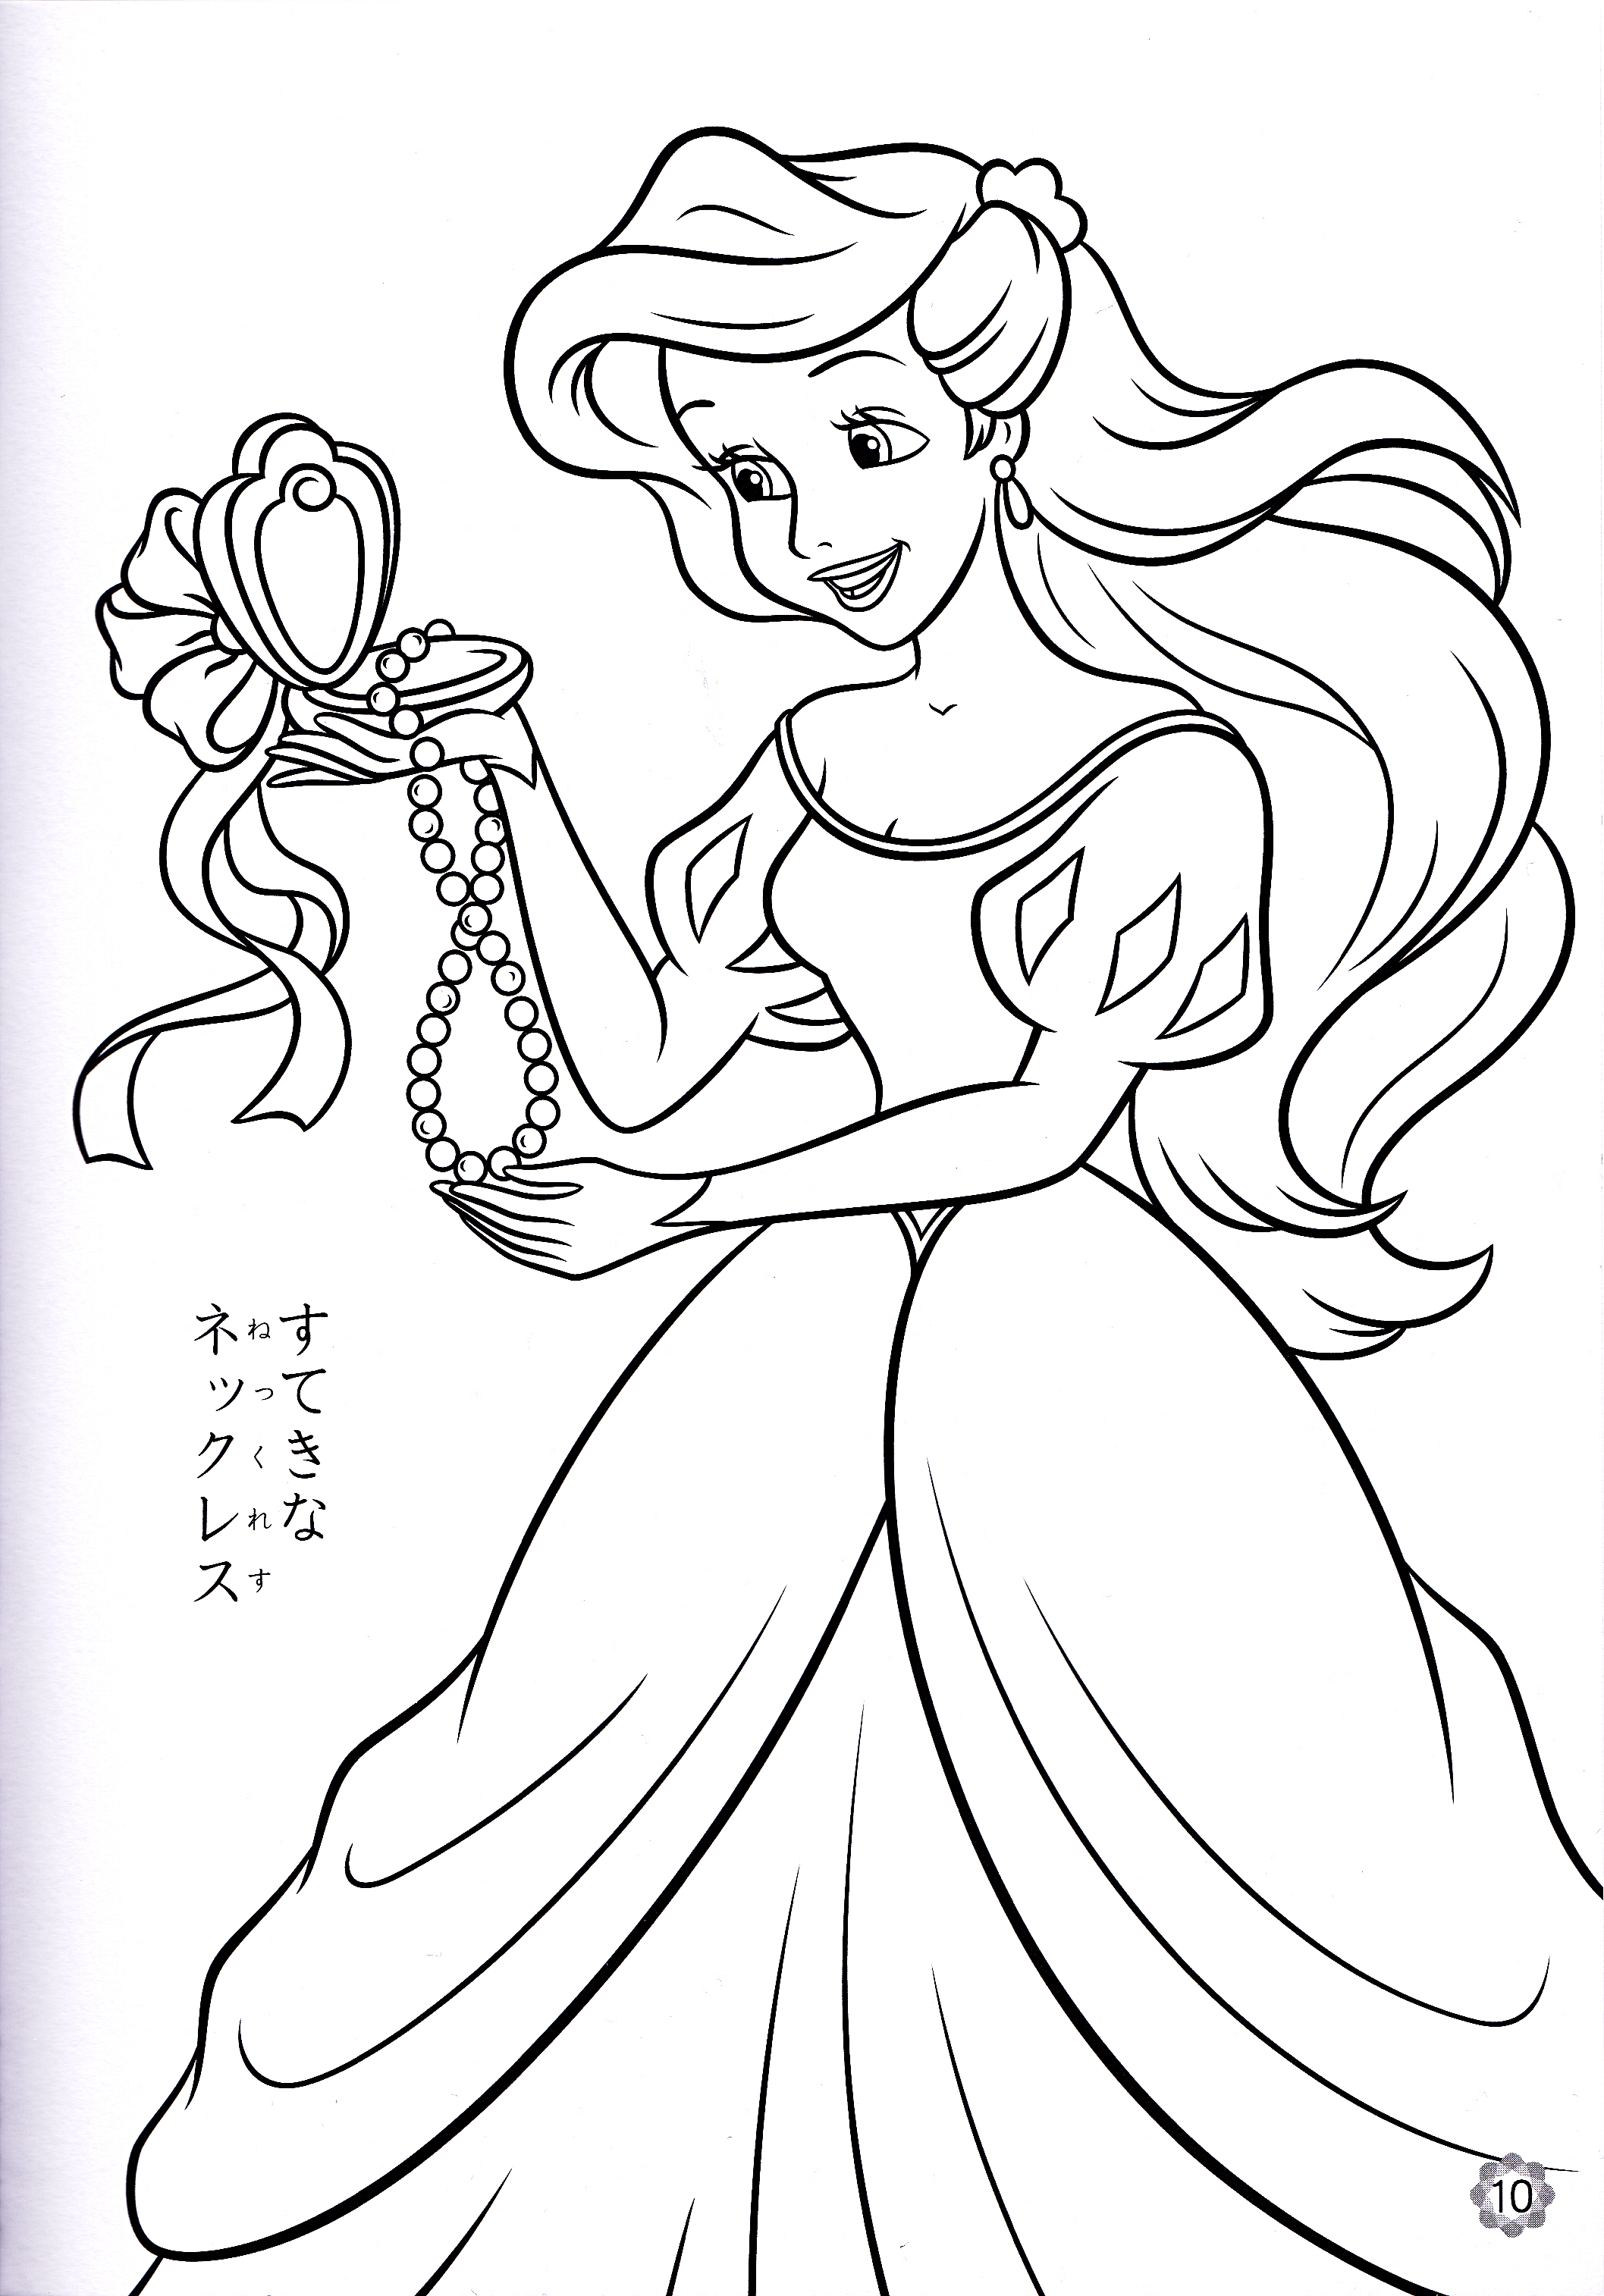 Free Printable Disney Princess Coloring Pages For Kids Princess Coloring Pictures